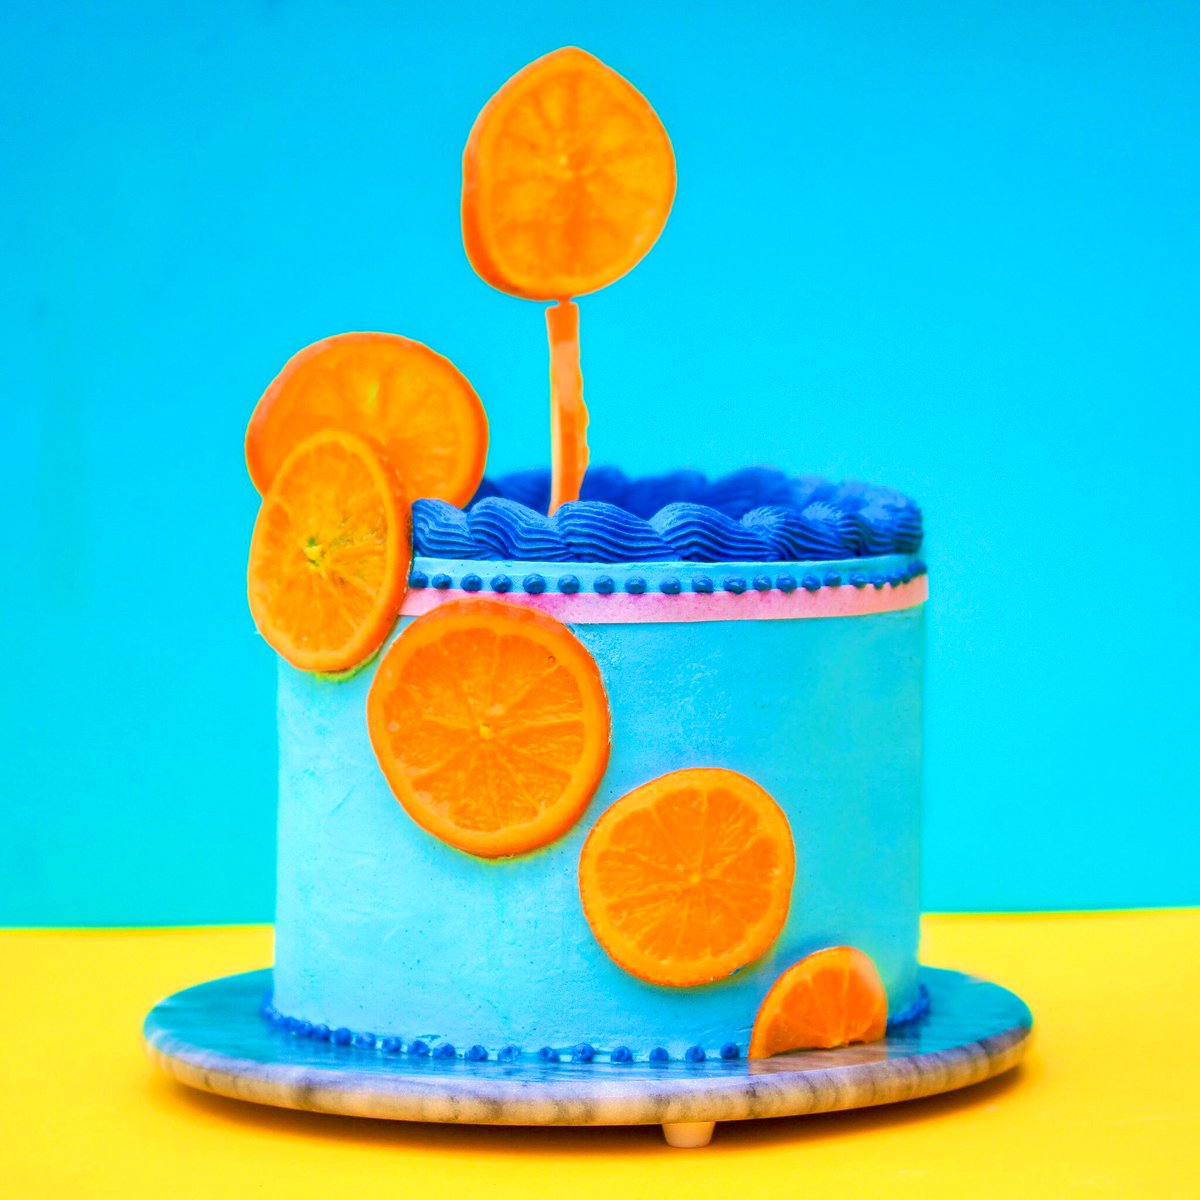 RT @kimjoyskitchen: Orange and stem ginger cake inspired by the fabulous @Bhytes1 outfit 💙🧡🍊 #rupauldragrace #GBBO https://t.co/GDlKWCIwzF